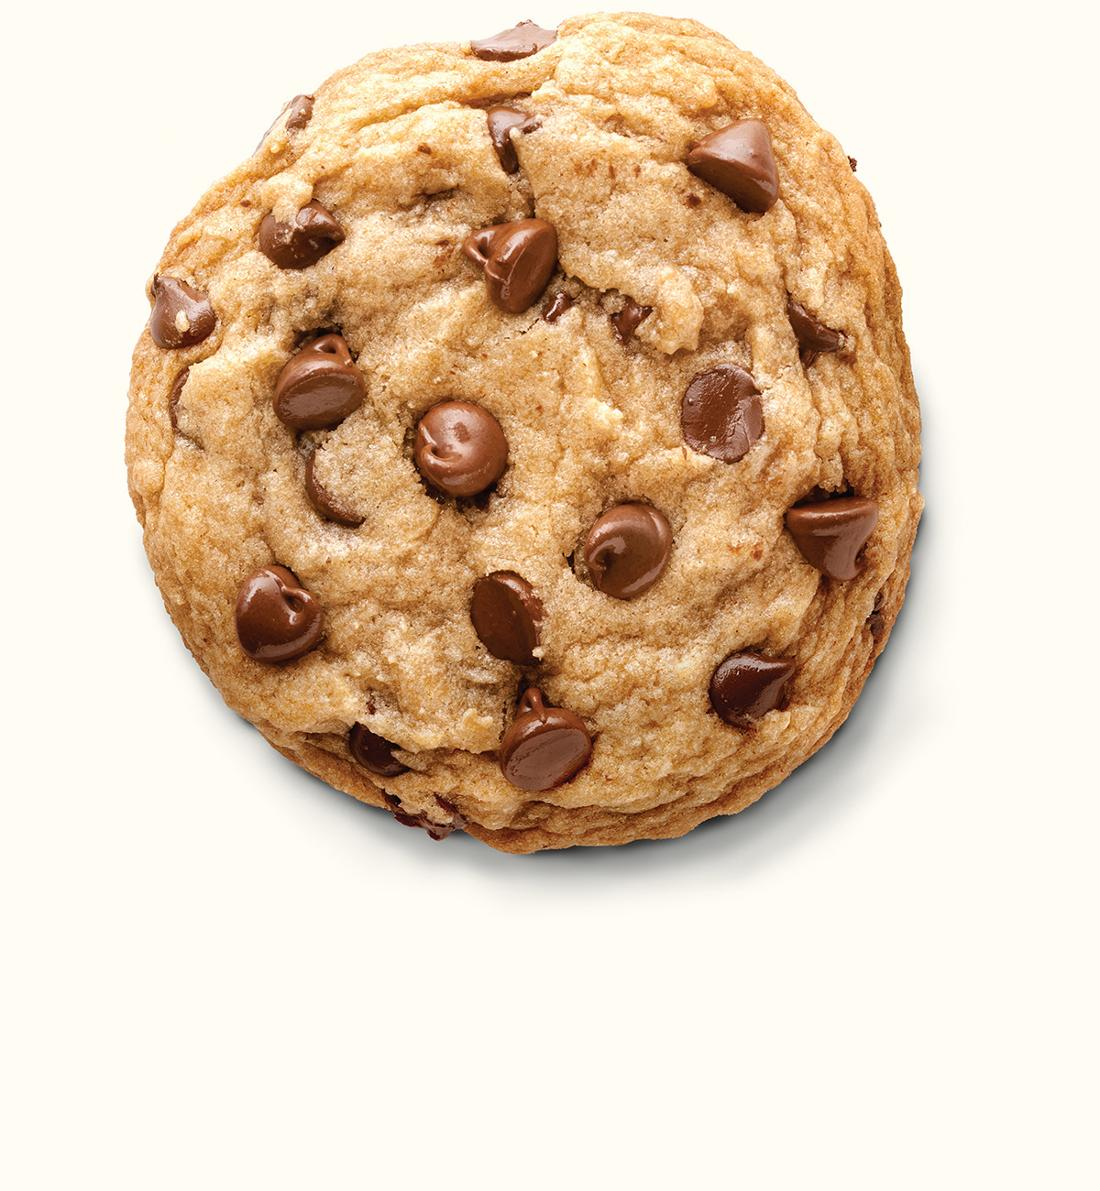 Facts About Chocolate Chip Cookies